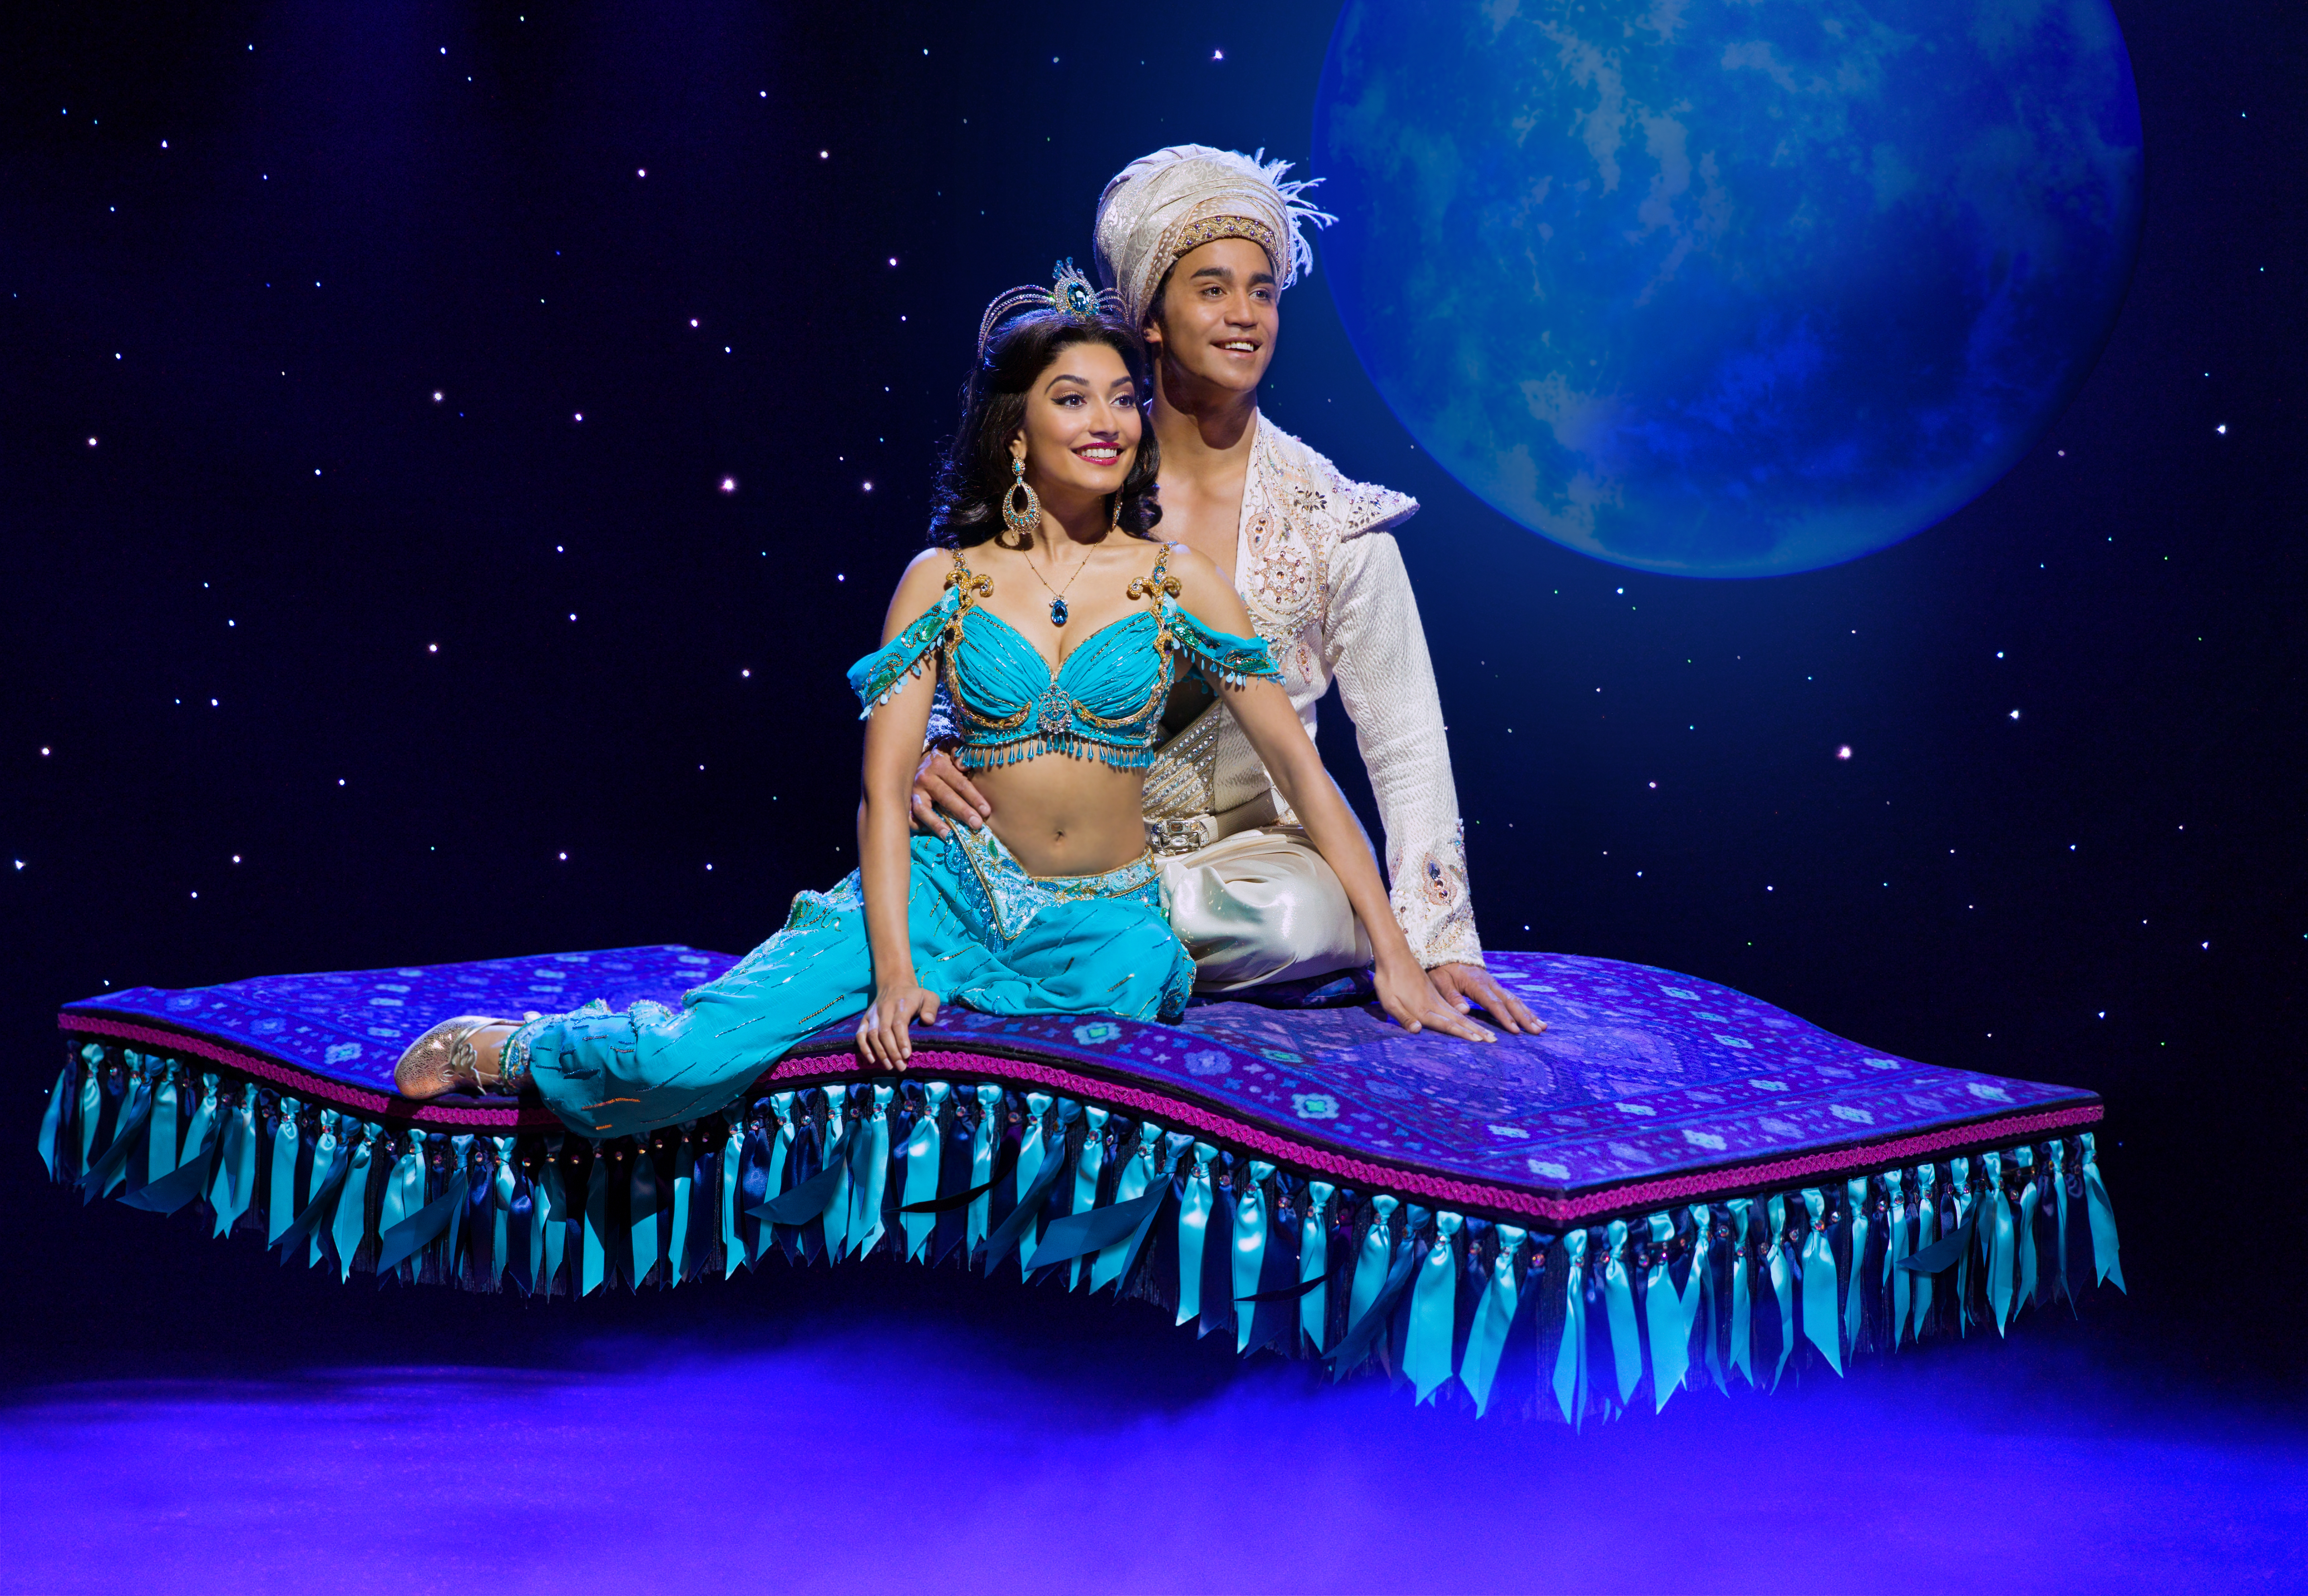 It was indeed a magic carpet ride